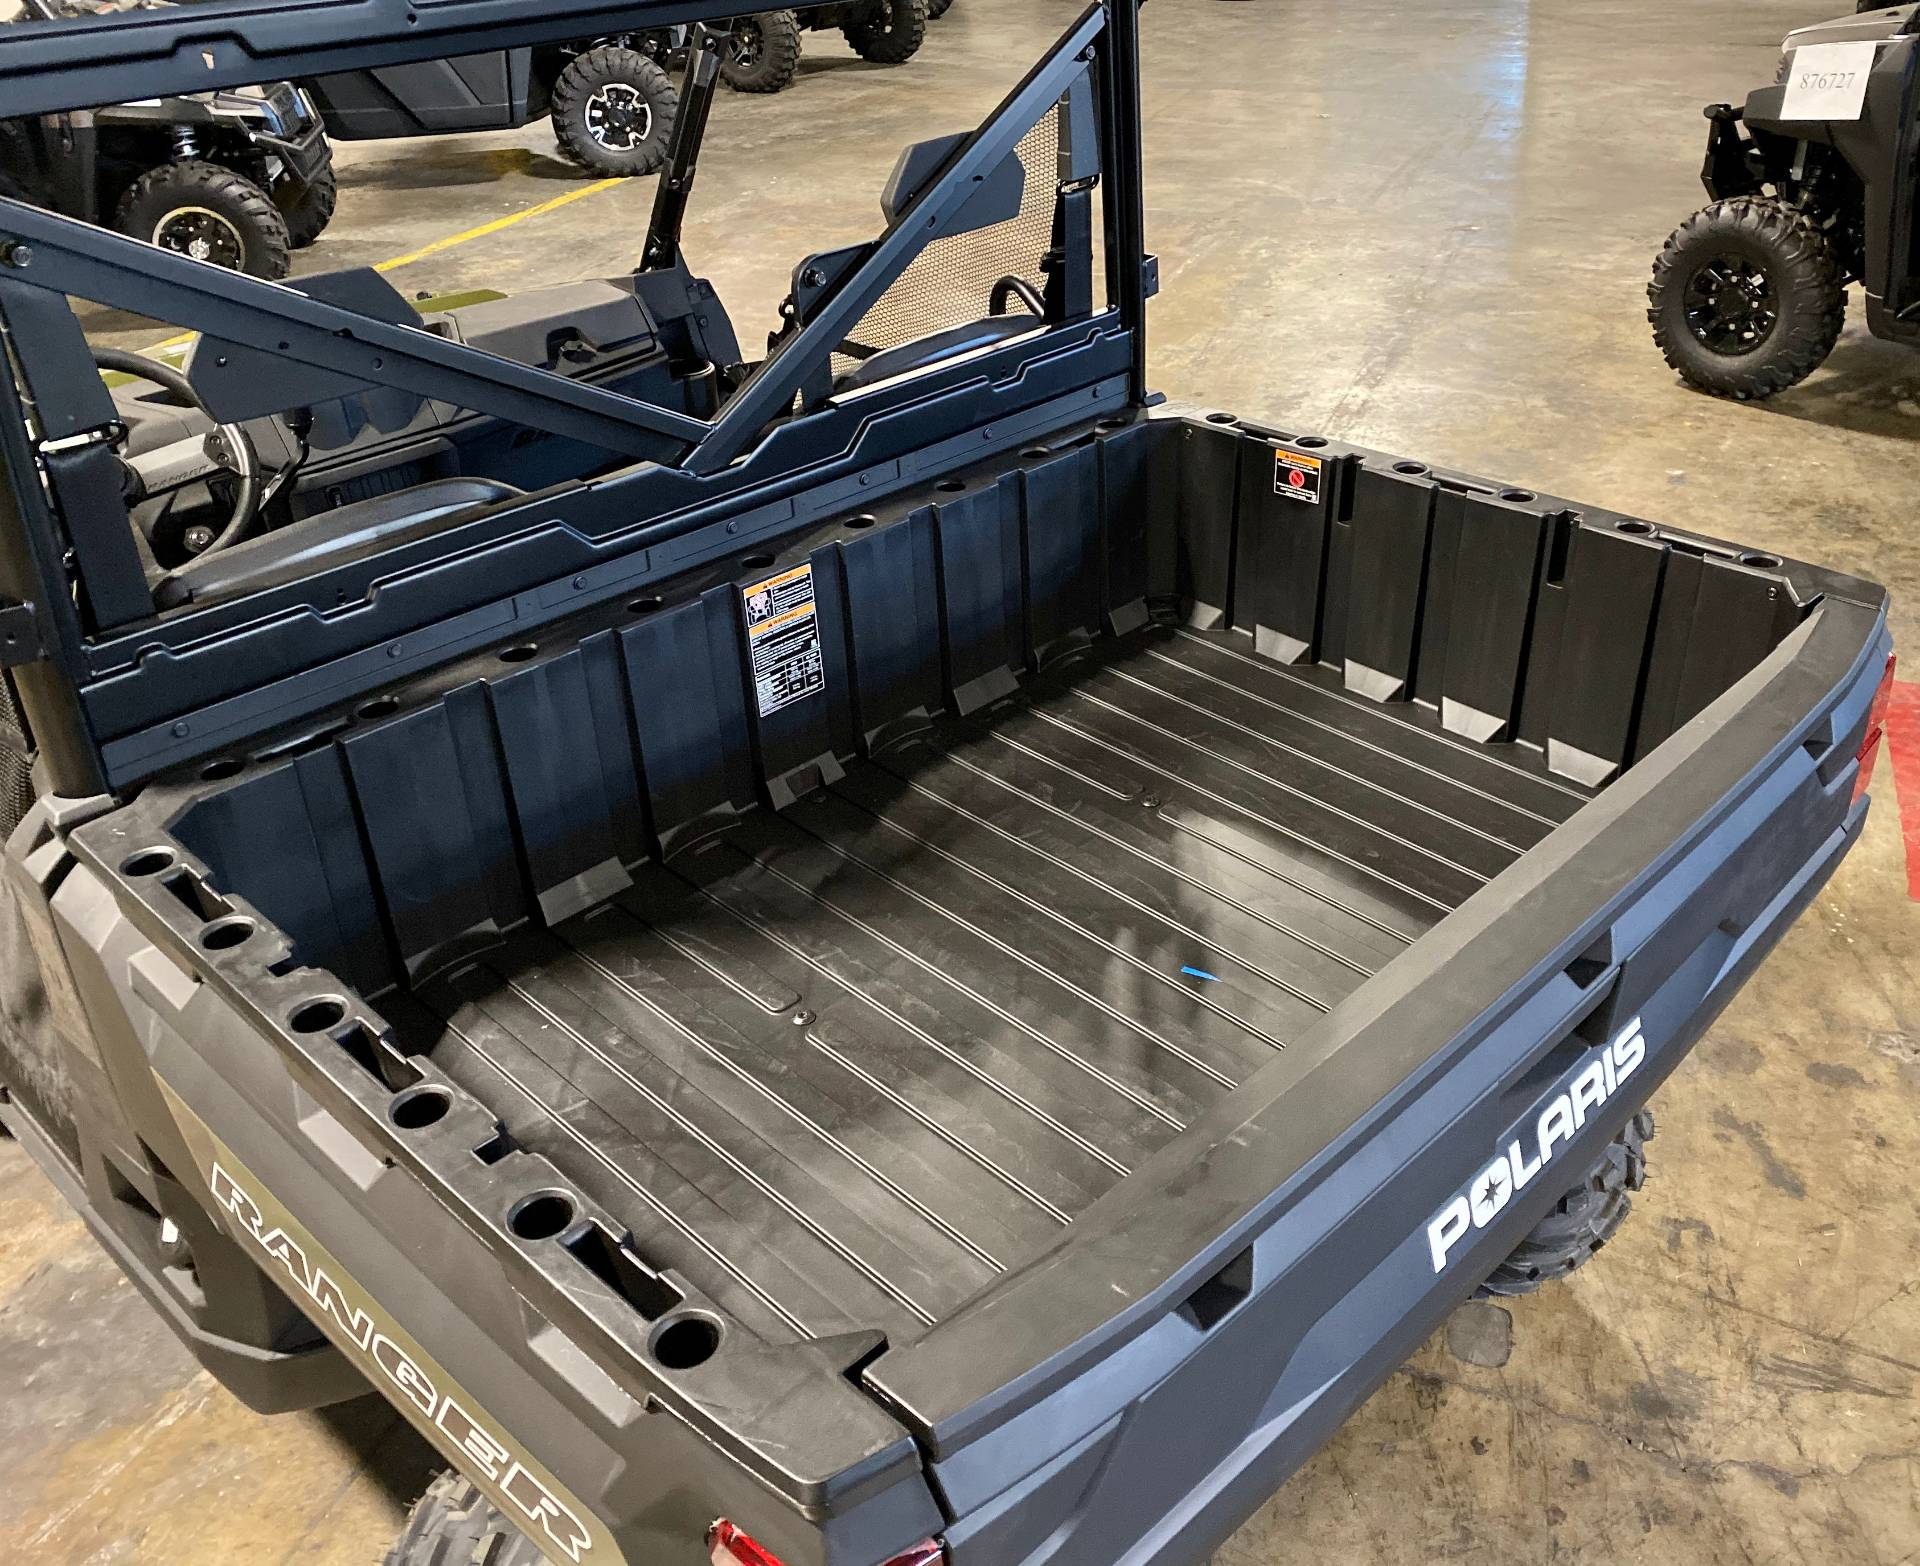 2020 Polaris Ranger 1000 EPS in Statesville, North Carolina - Photo 6